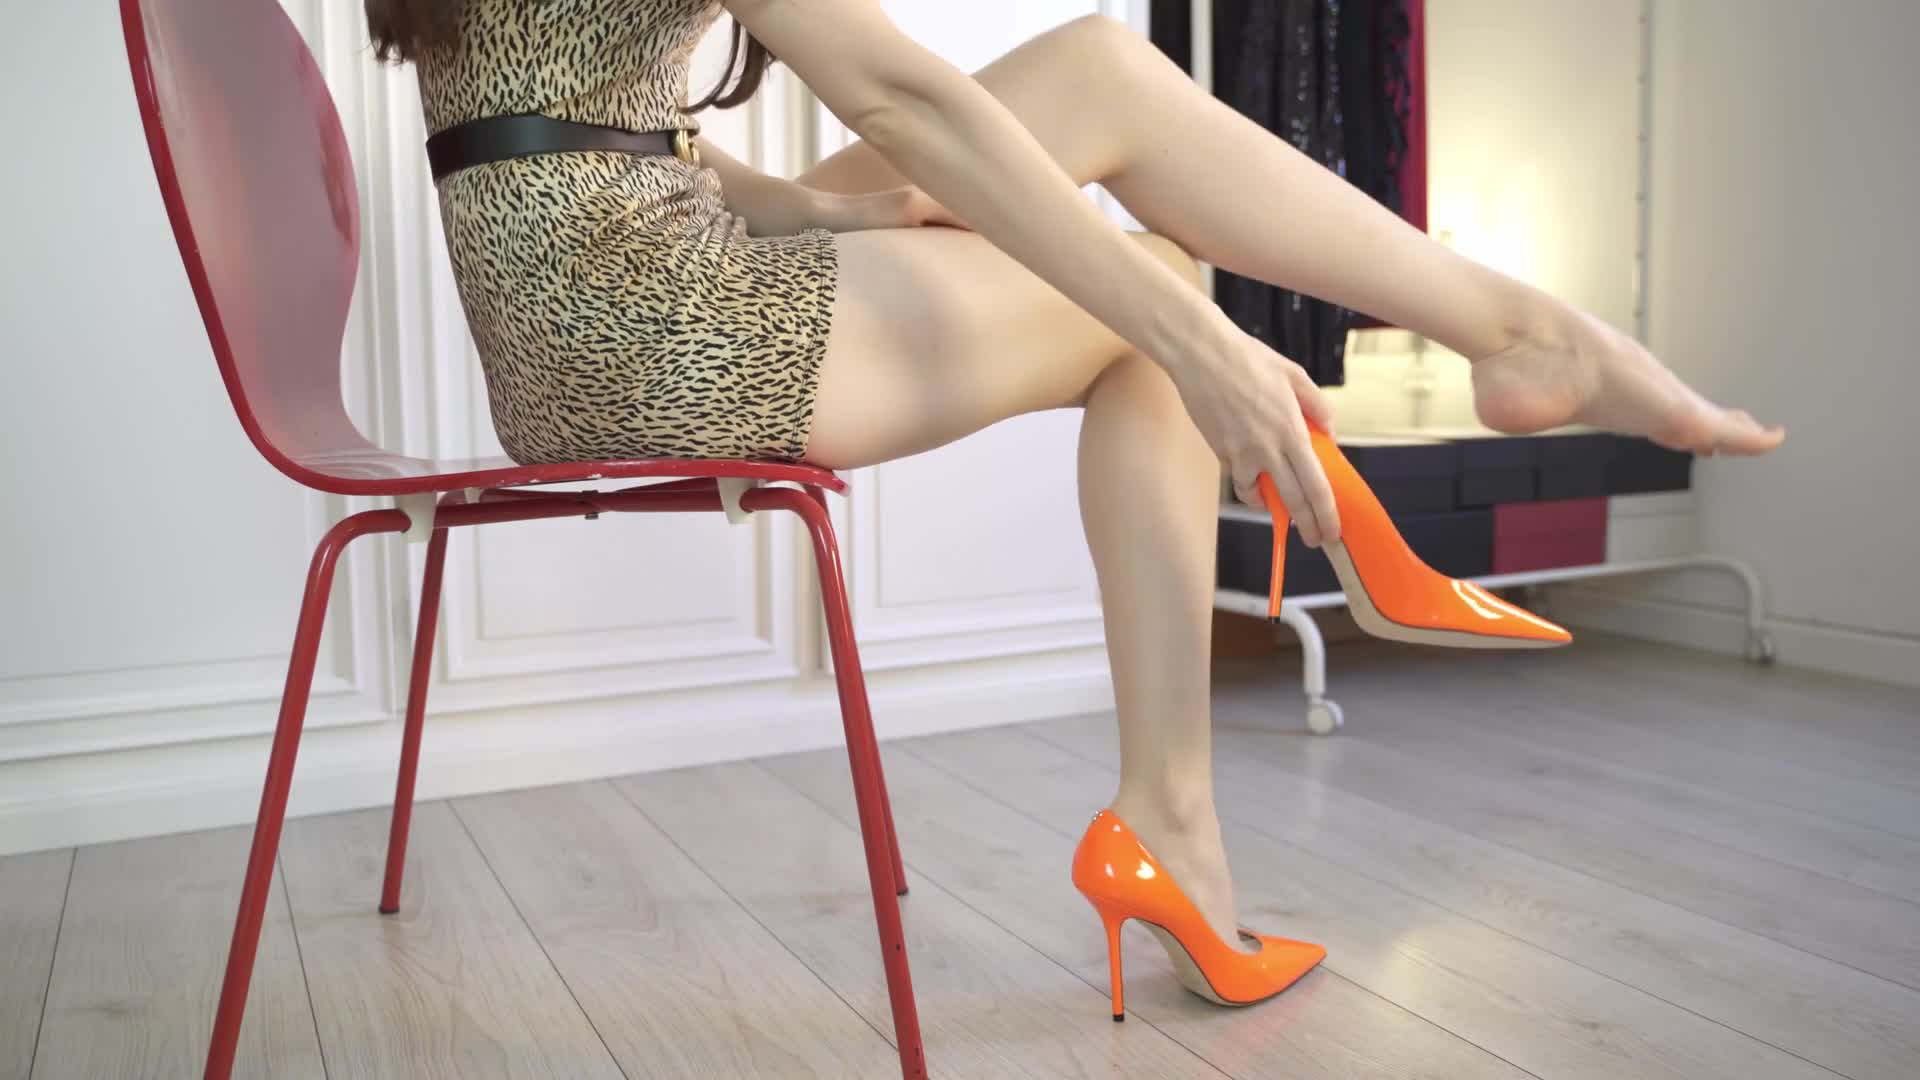 Try Outs with Tanya - 6 Ways to Style Jimmy Choo Heels (mini skirts, dresses, hosiery)